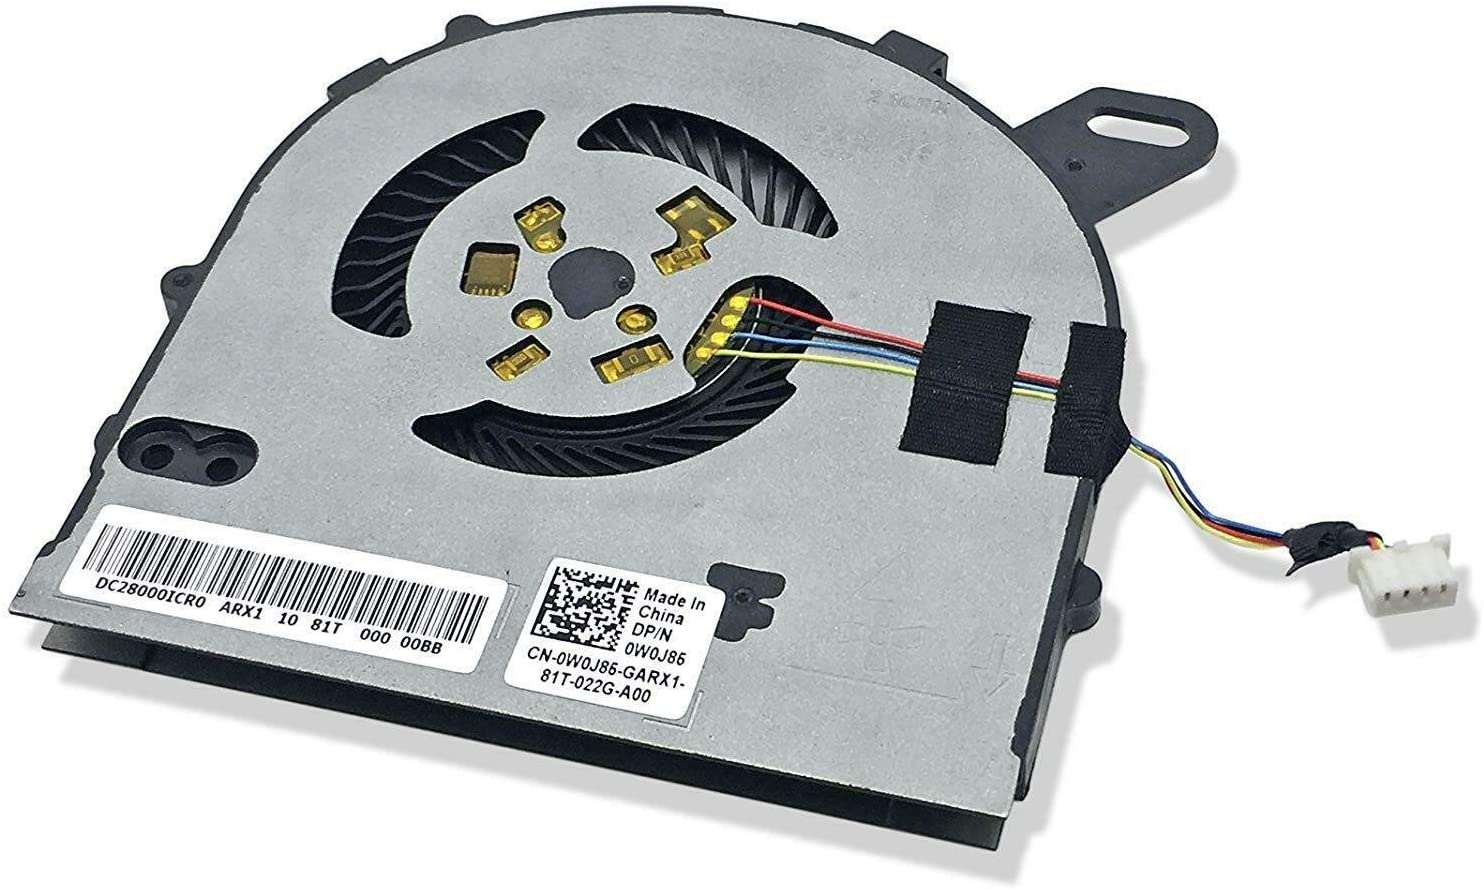 CAQL CPU Cooling Fan for Inspiron 15 7560 15-7560 15-7572 / Vostro 5468 5568 Series, P/N: DC028000ICR0 0W0J85 W0J85